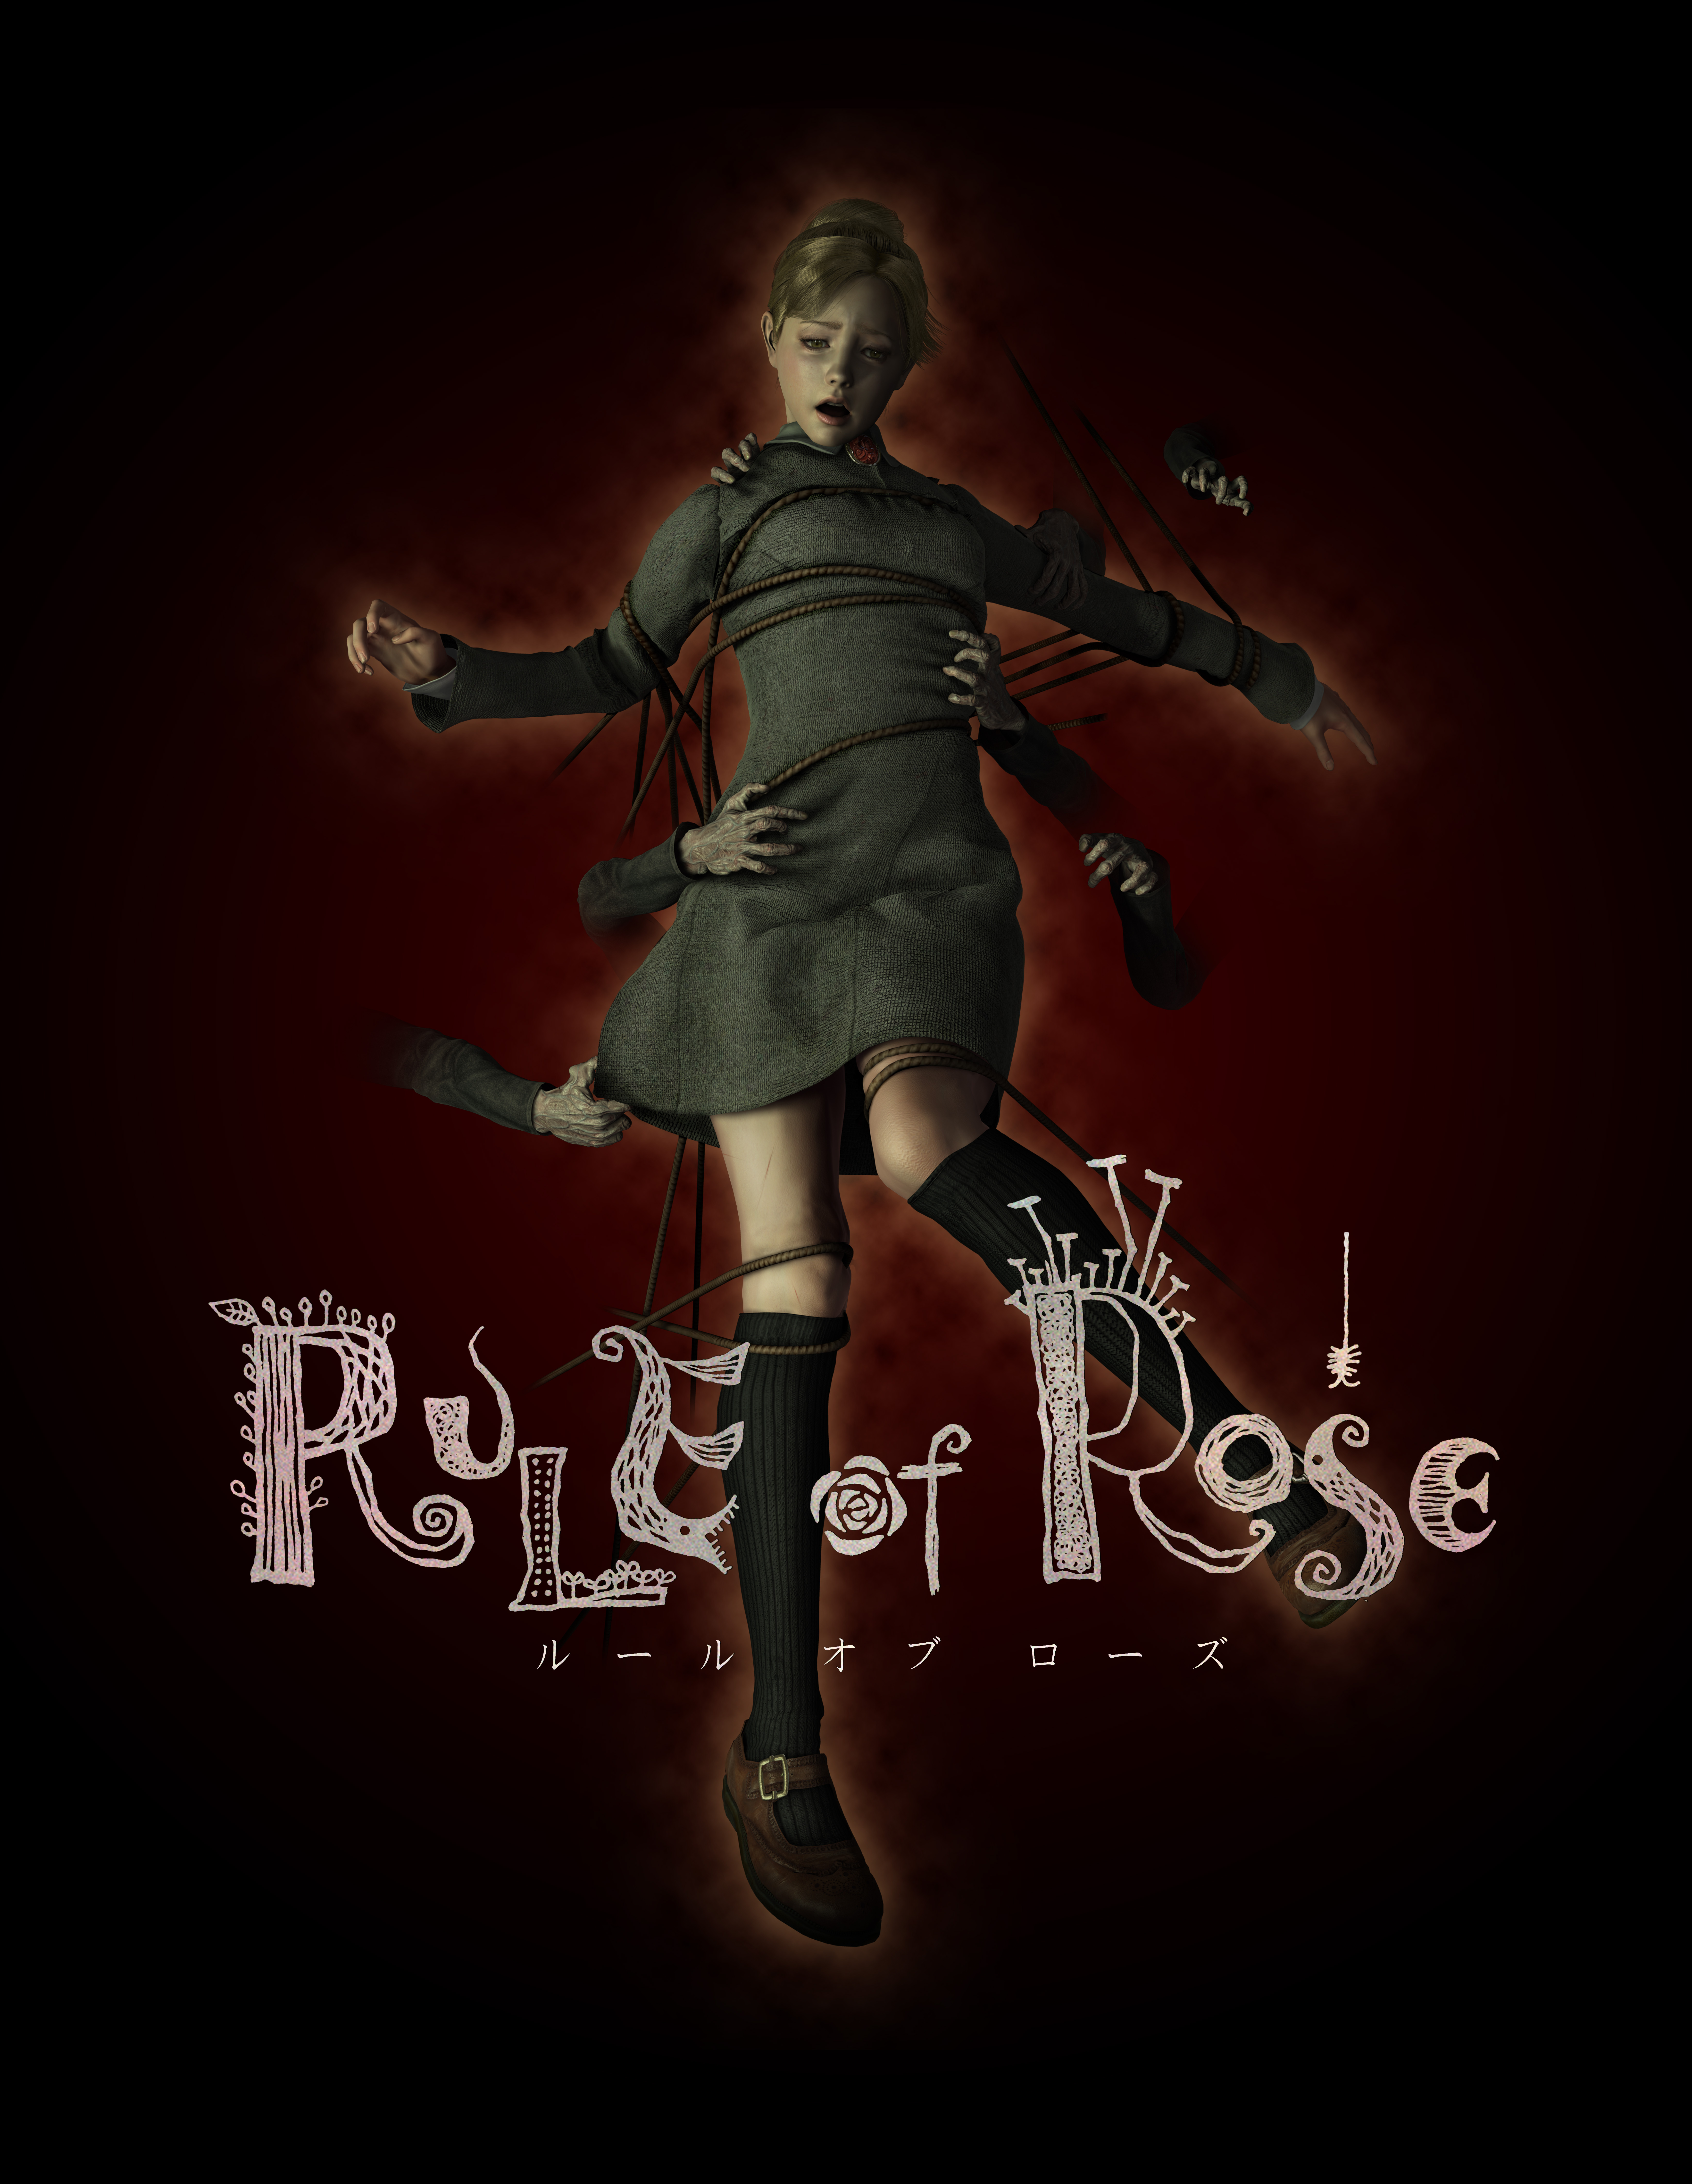 Rule of Rose (2006) PlayStation 2 box cover art - MobyGames